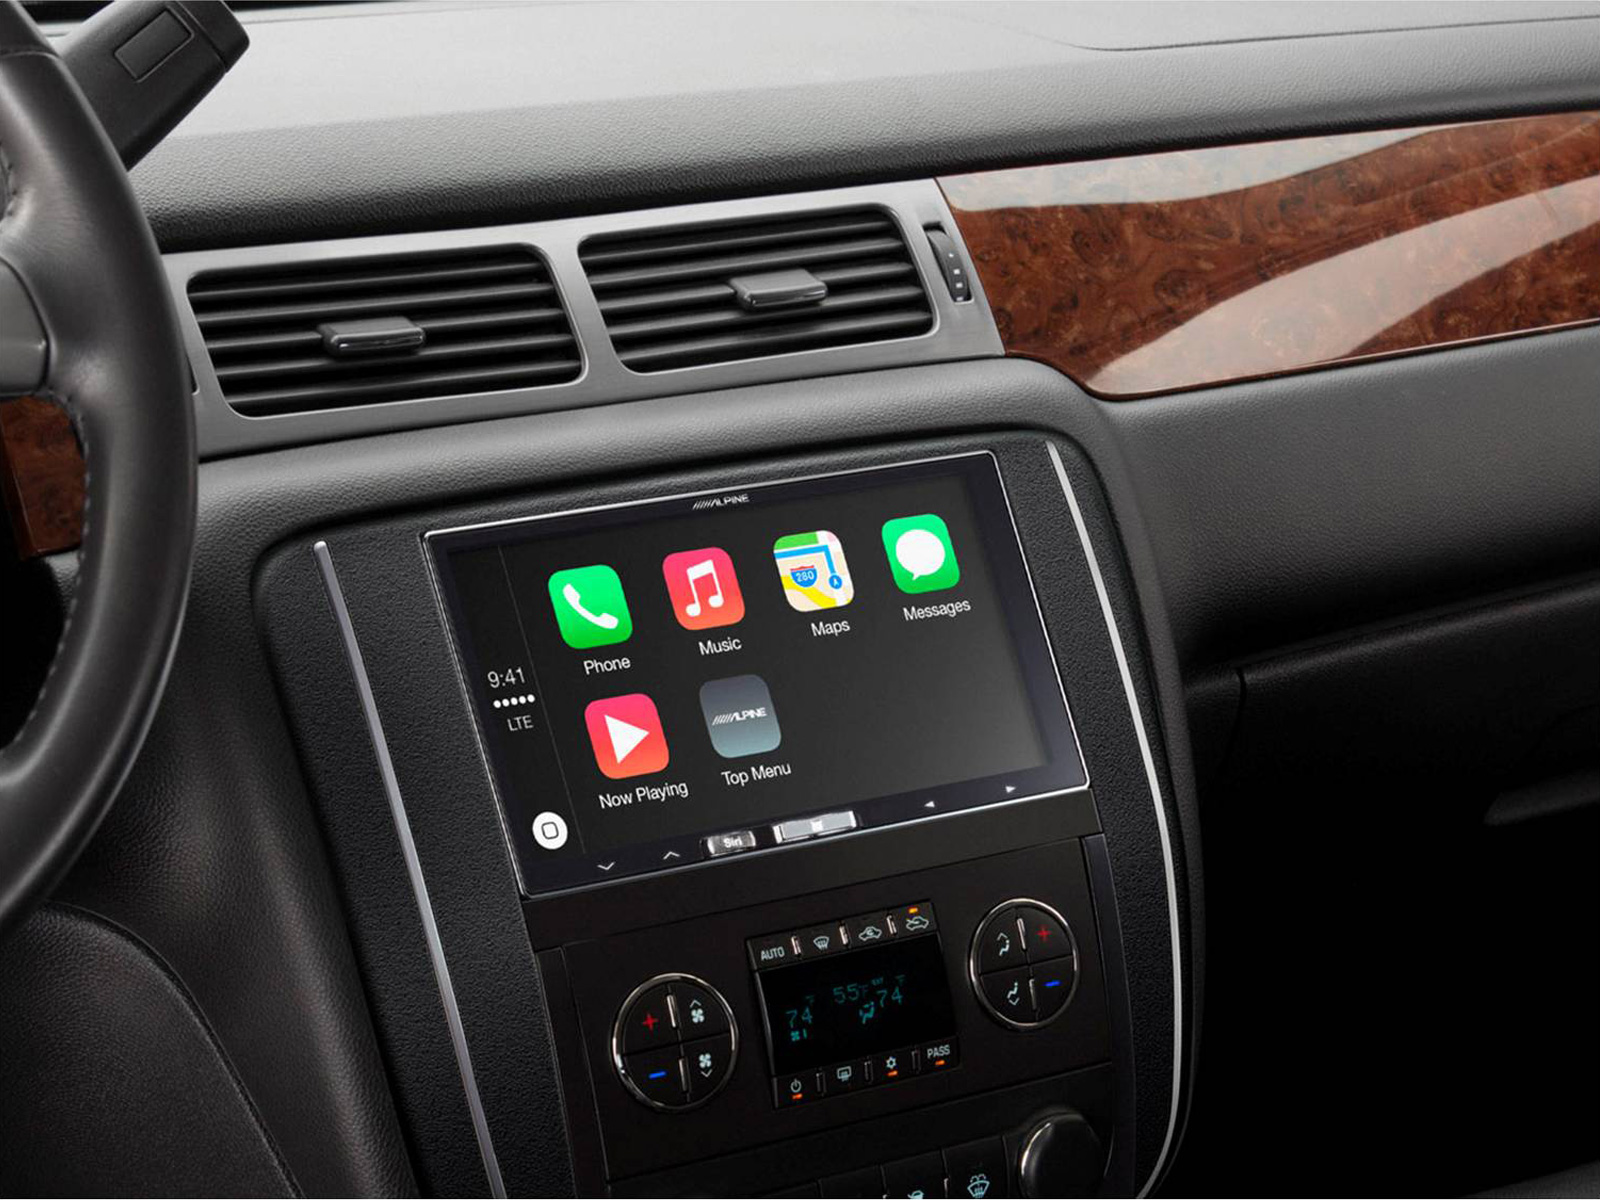 alpine 7 apple car play apple maps touchscreen fm usb aux. Black Bedroom Furniture Sets. Home Design Ideas